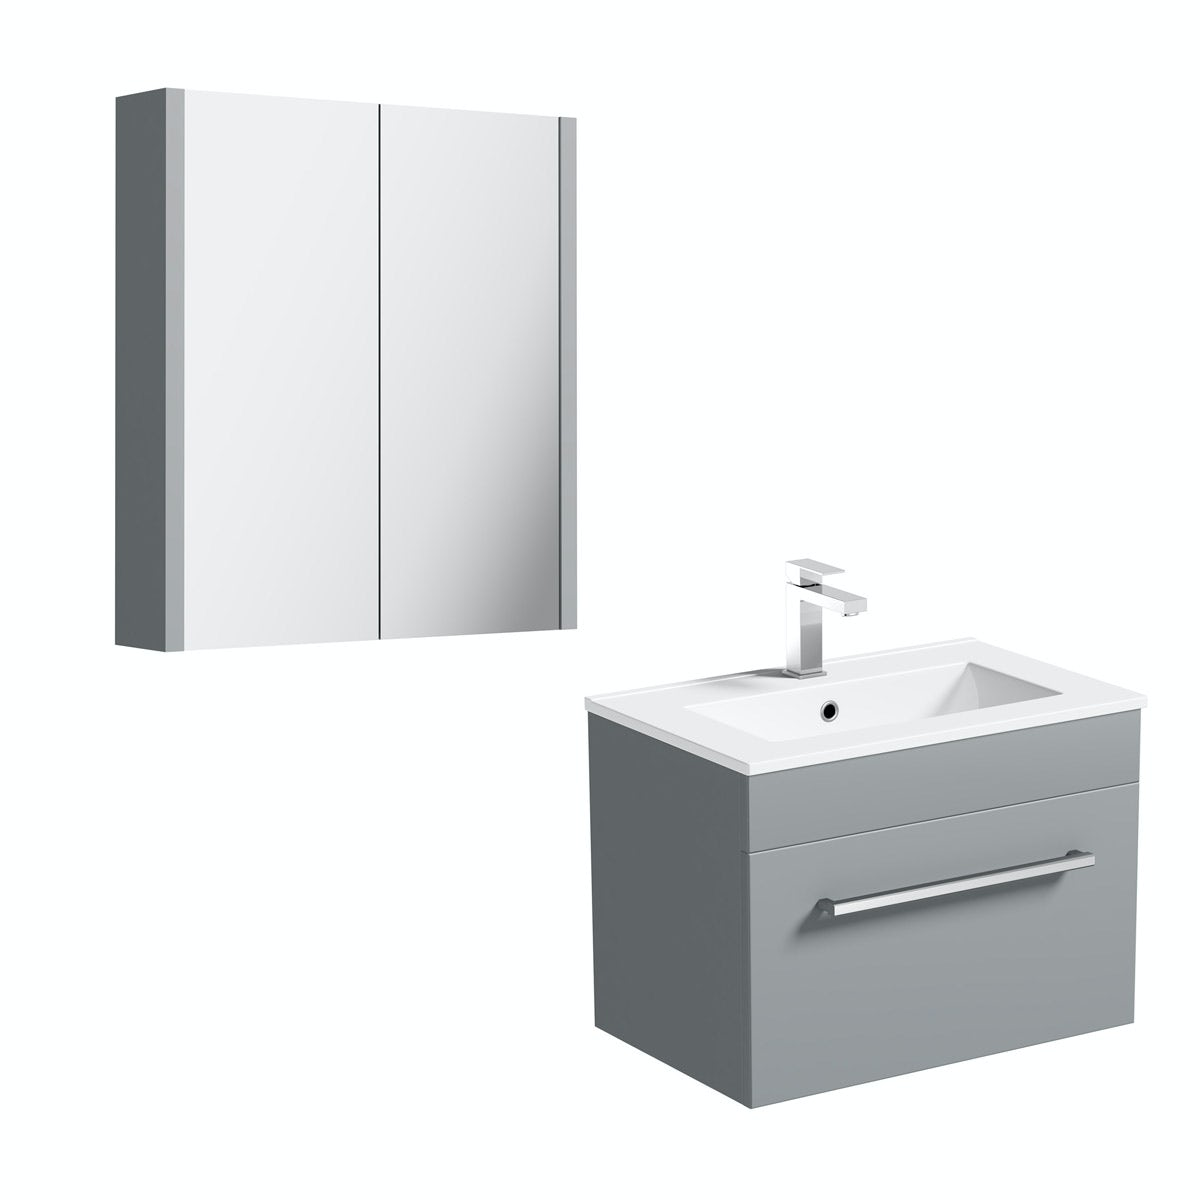 Orchard Derwent stone grey wall hung vanity unit 600mm and mirror